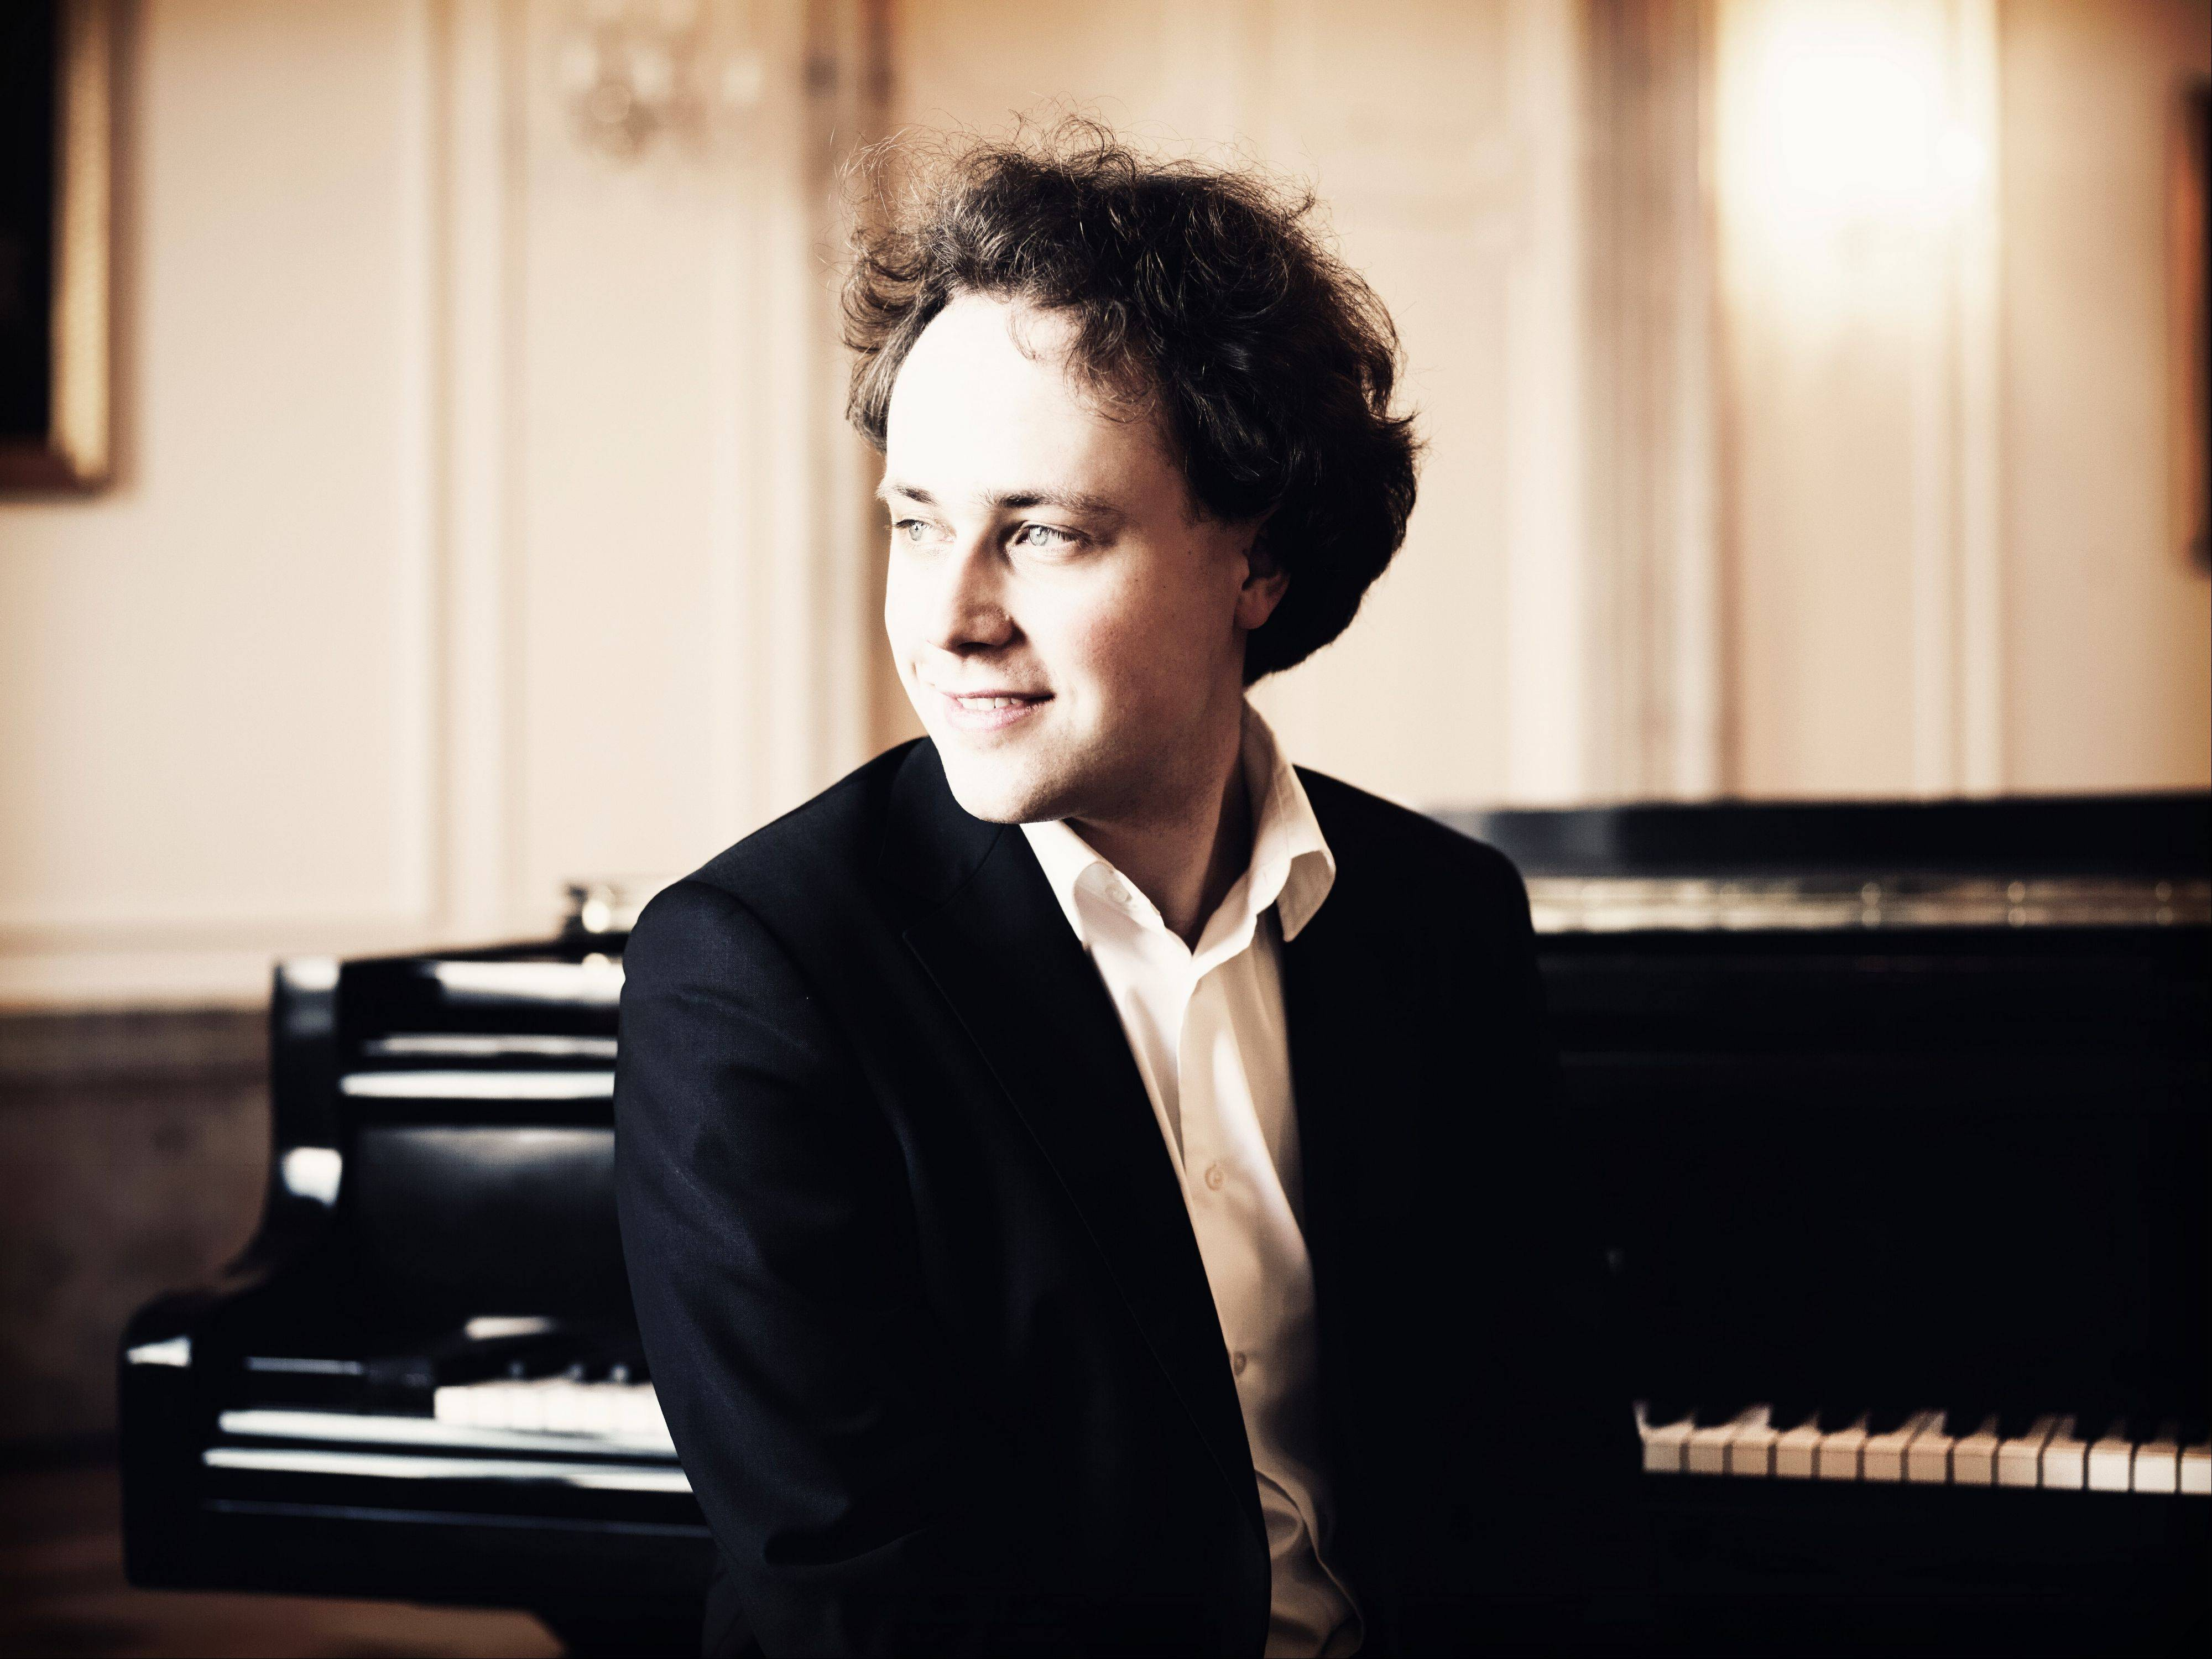 Pianist Alexander Schimpf performs with the Elgin Symphony Orchestra.